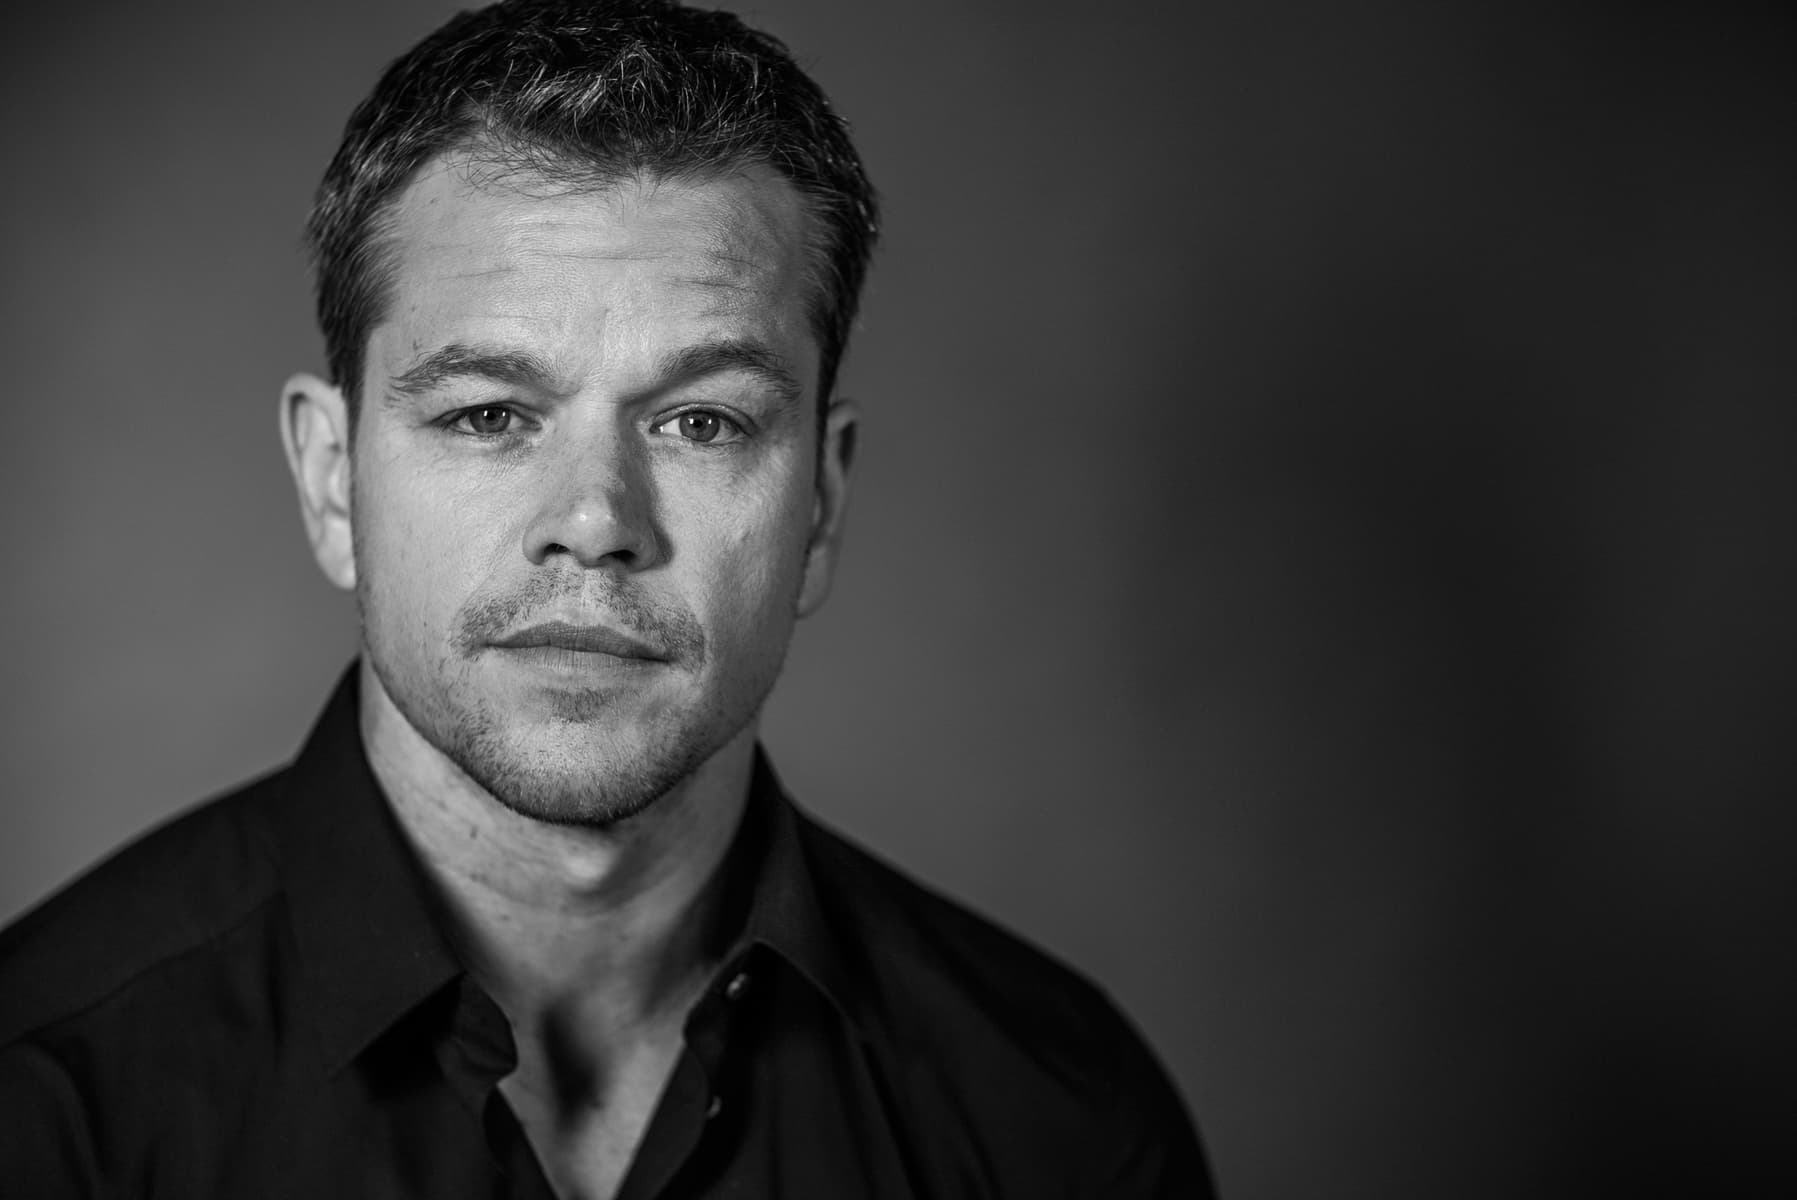 Wallpaper of Matt Damon black and white